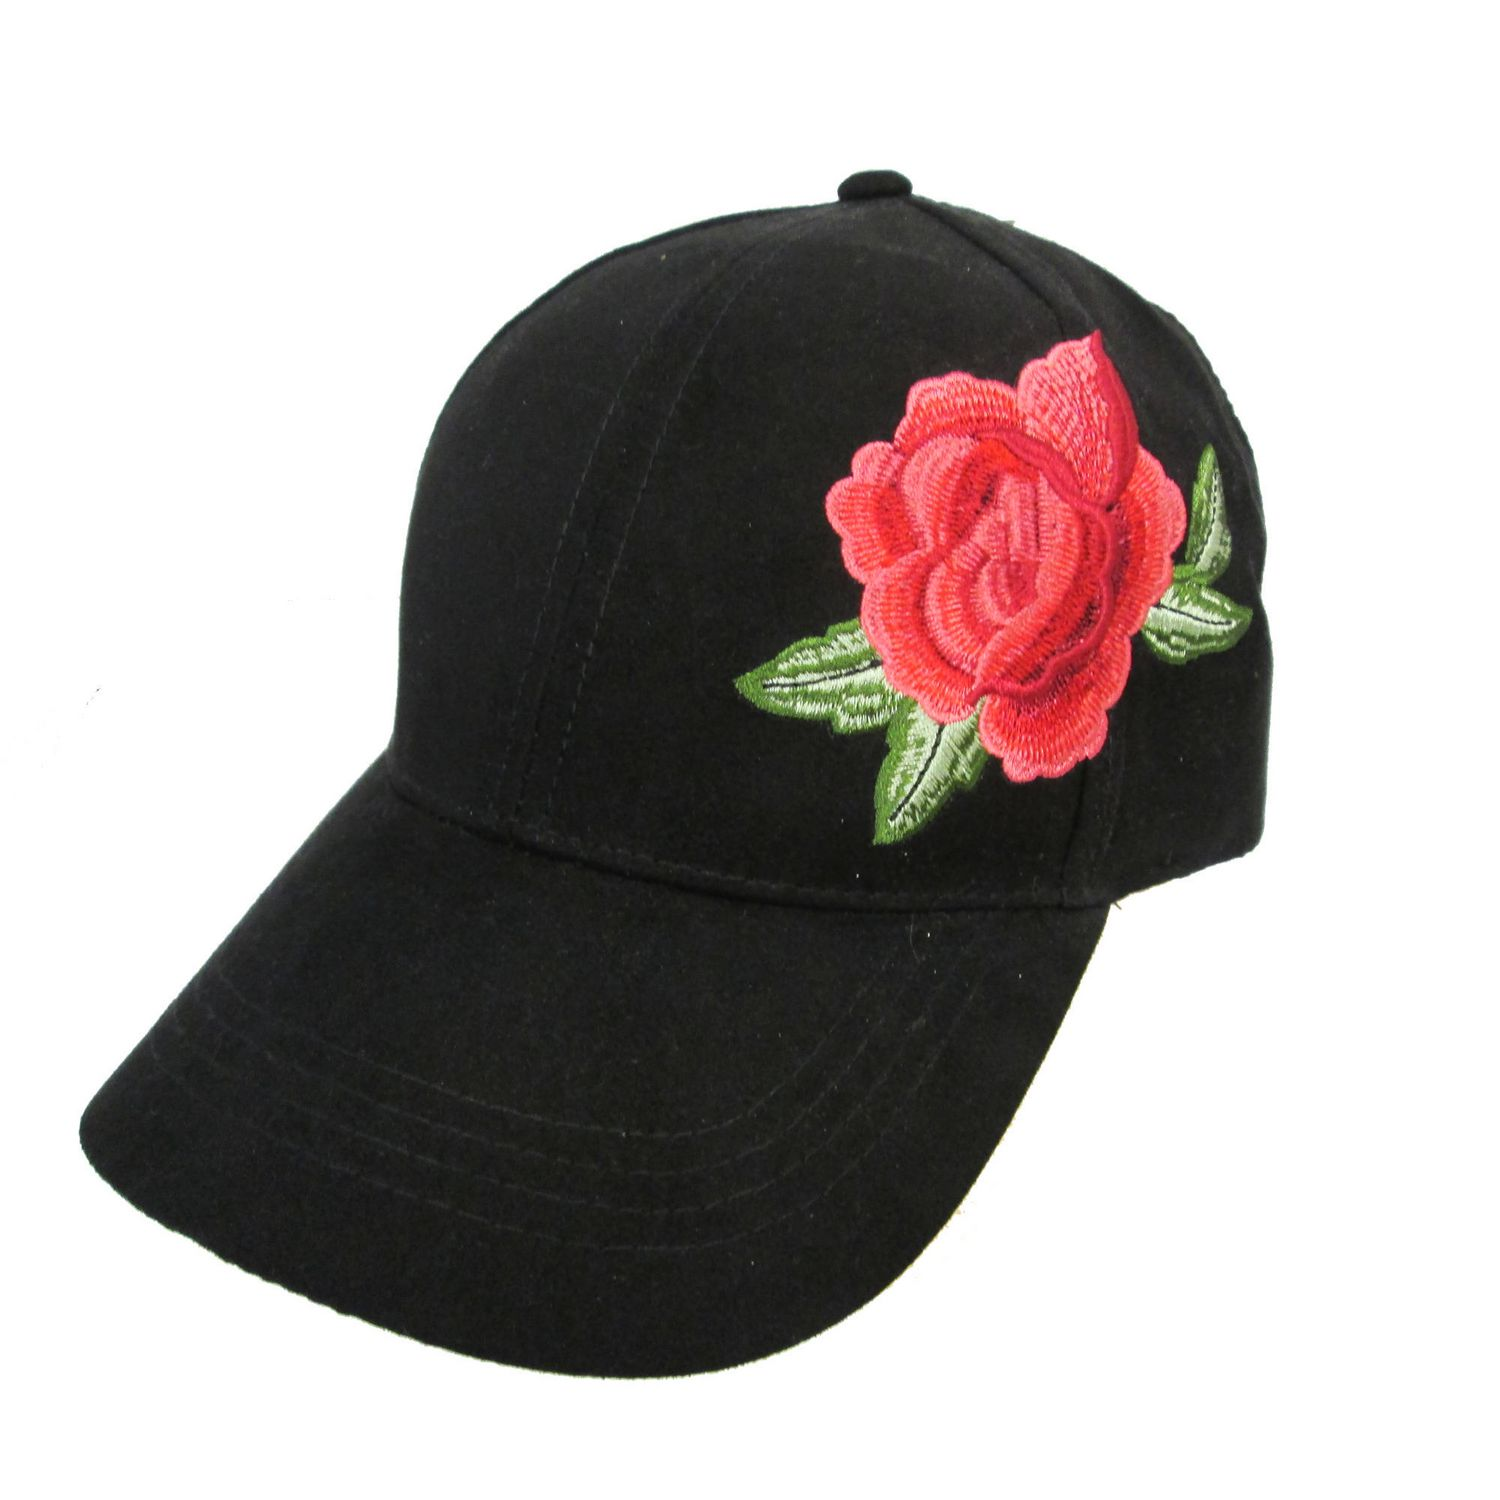 78fd83cca George Ladies' Faux Suede Baseball Hat with Floral embroidery ...